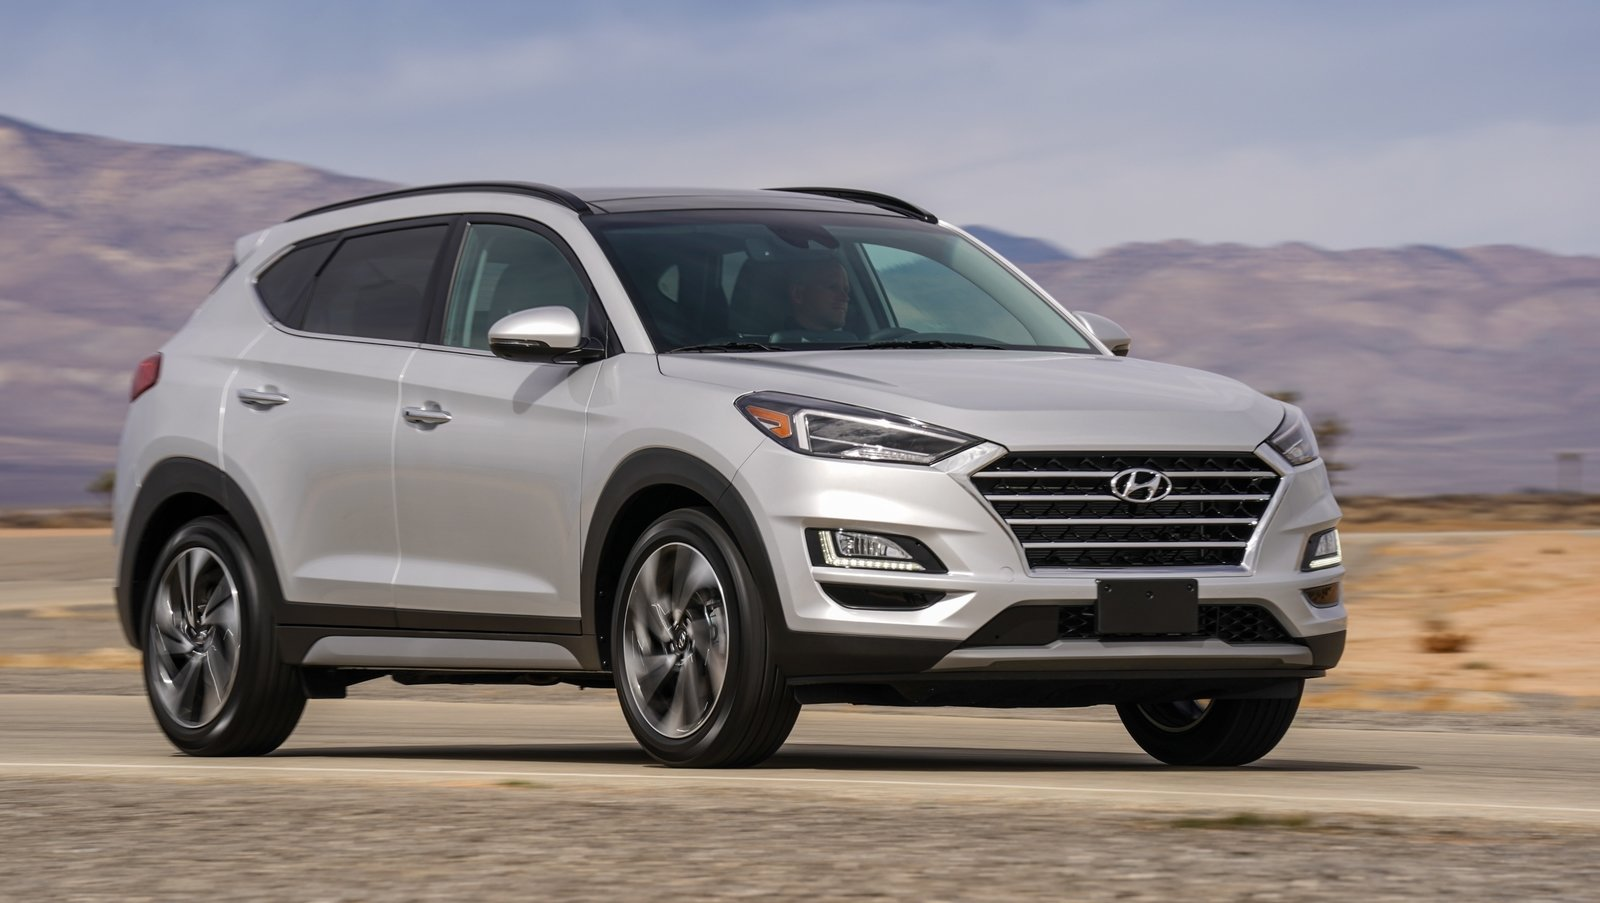 High-Performance SUVs Are Becoming A Trend As Hyundai Preps A Tucson N For 2021 Pictures, Photos ...